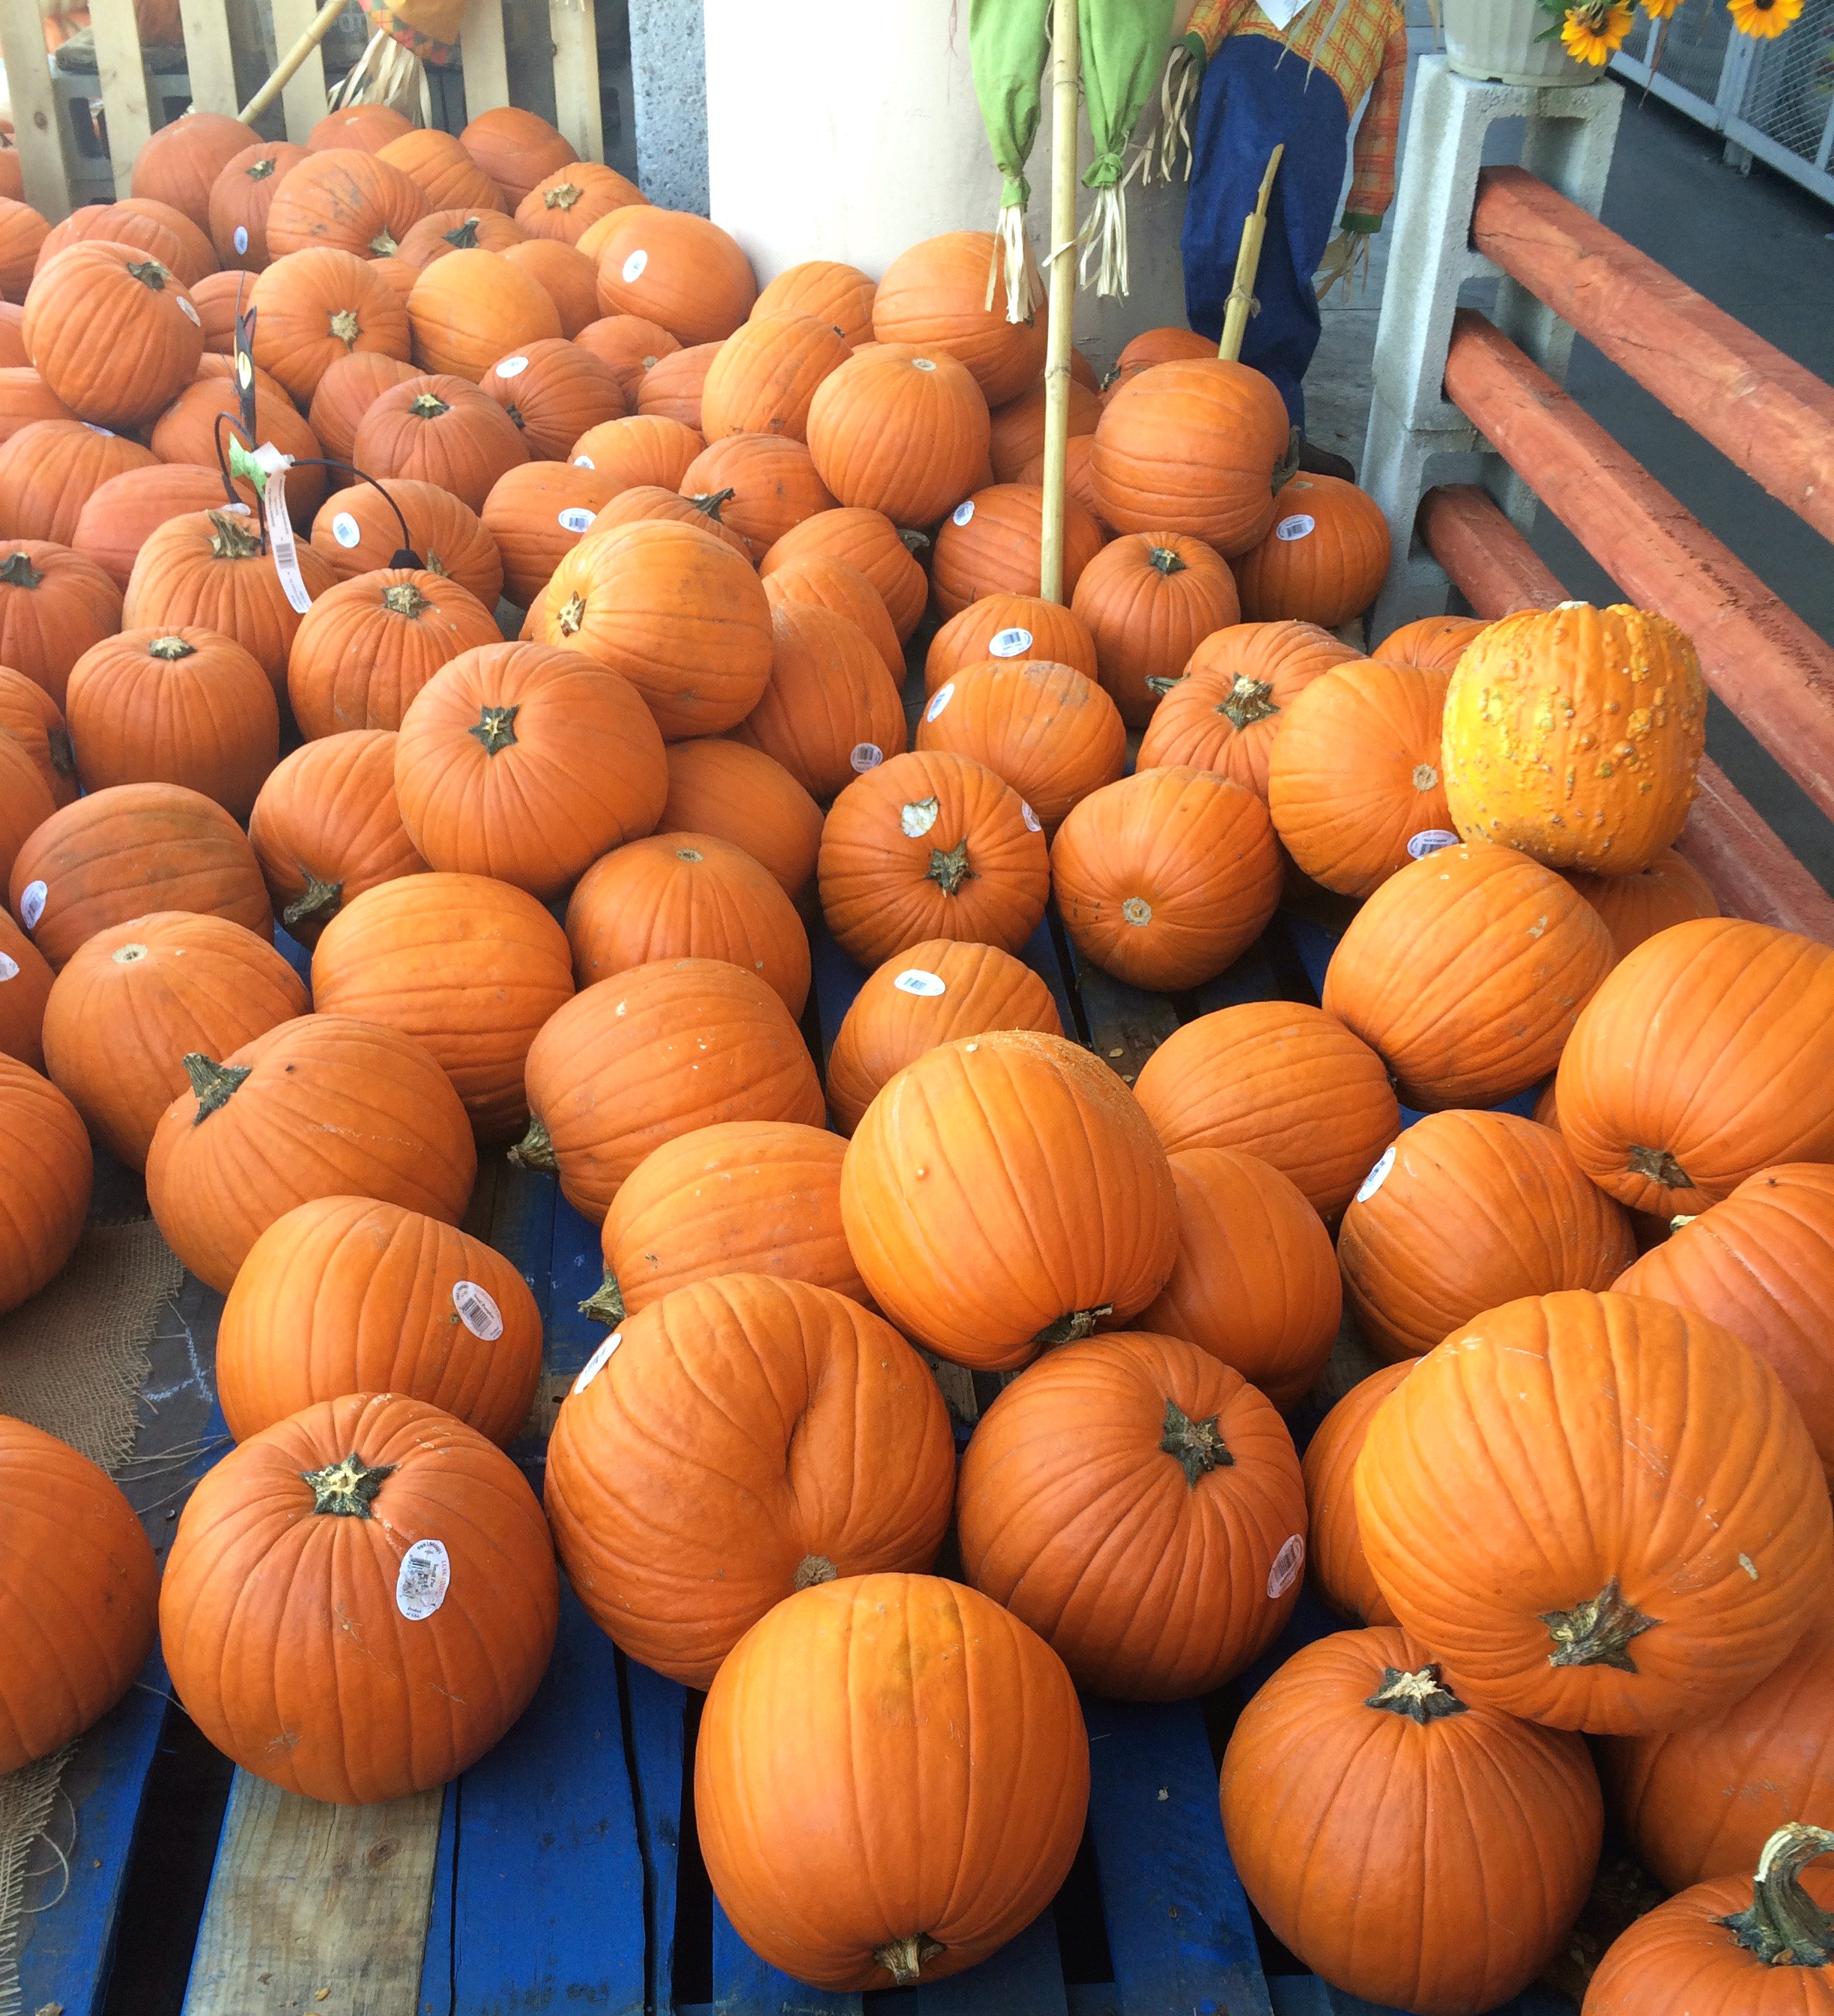 A plethora of pumpkins